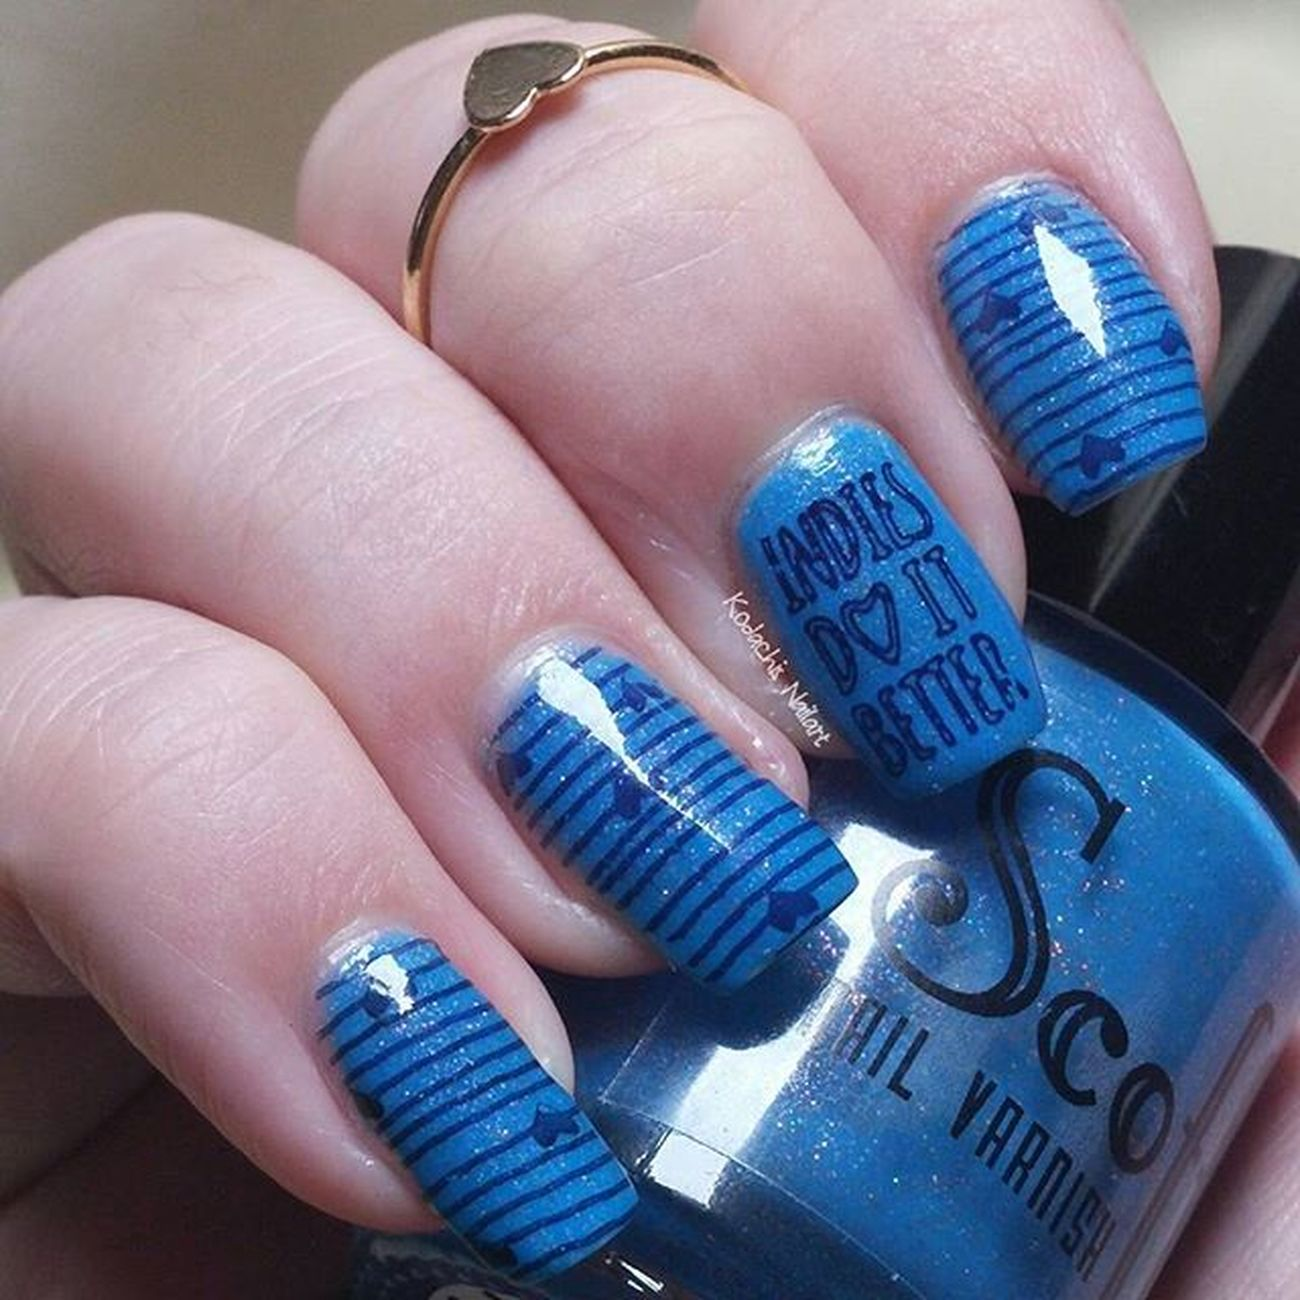 Late again - day 5 - Blue 31dc2015 : Subterranean Homesick alien by @scofflawvarnish stamped with @uberchicbeauty plates and @essiedeutschland - after school boy blazer Scofflawvarnish Uberchicbeauty Essie Itrustindiepolish